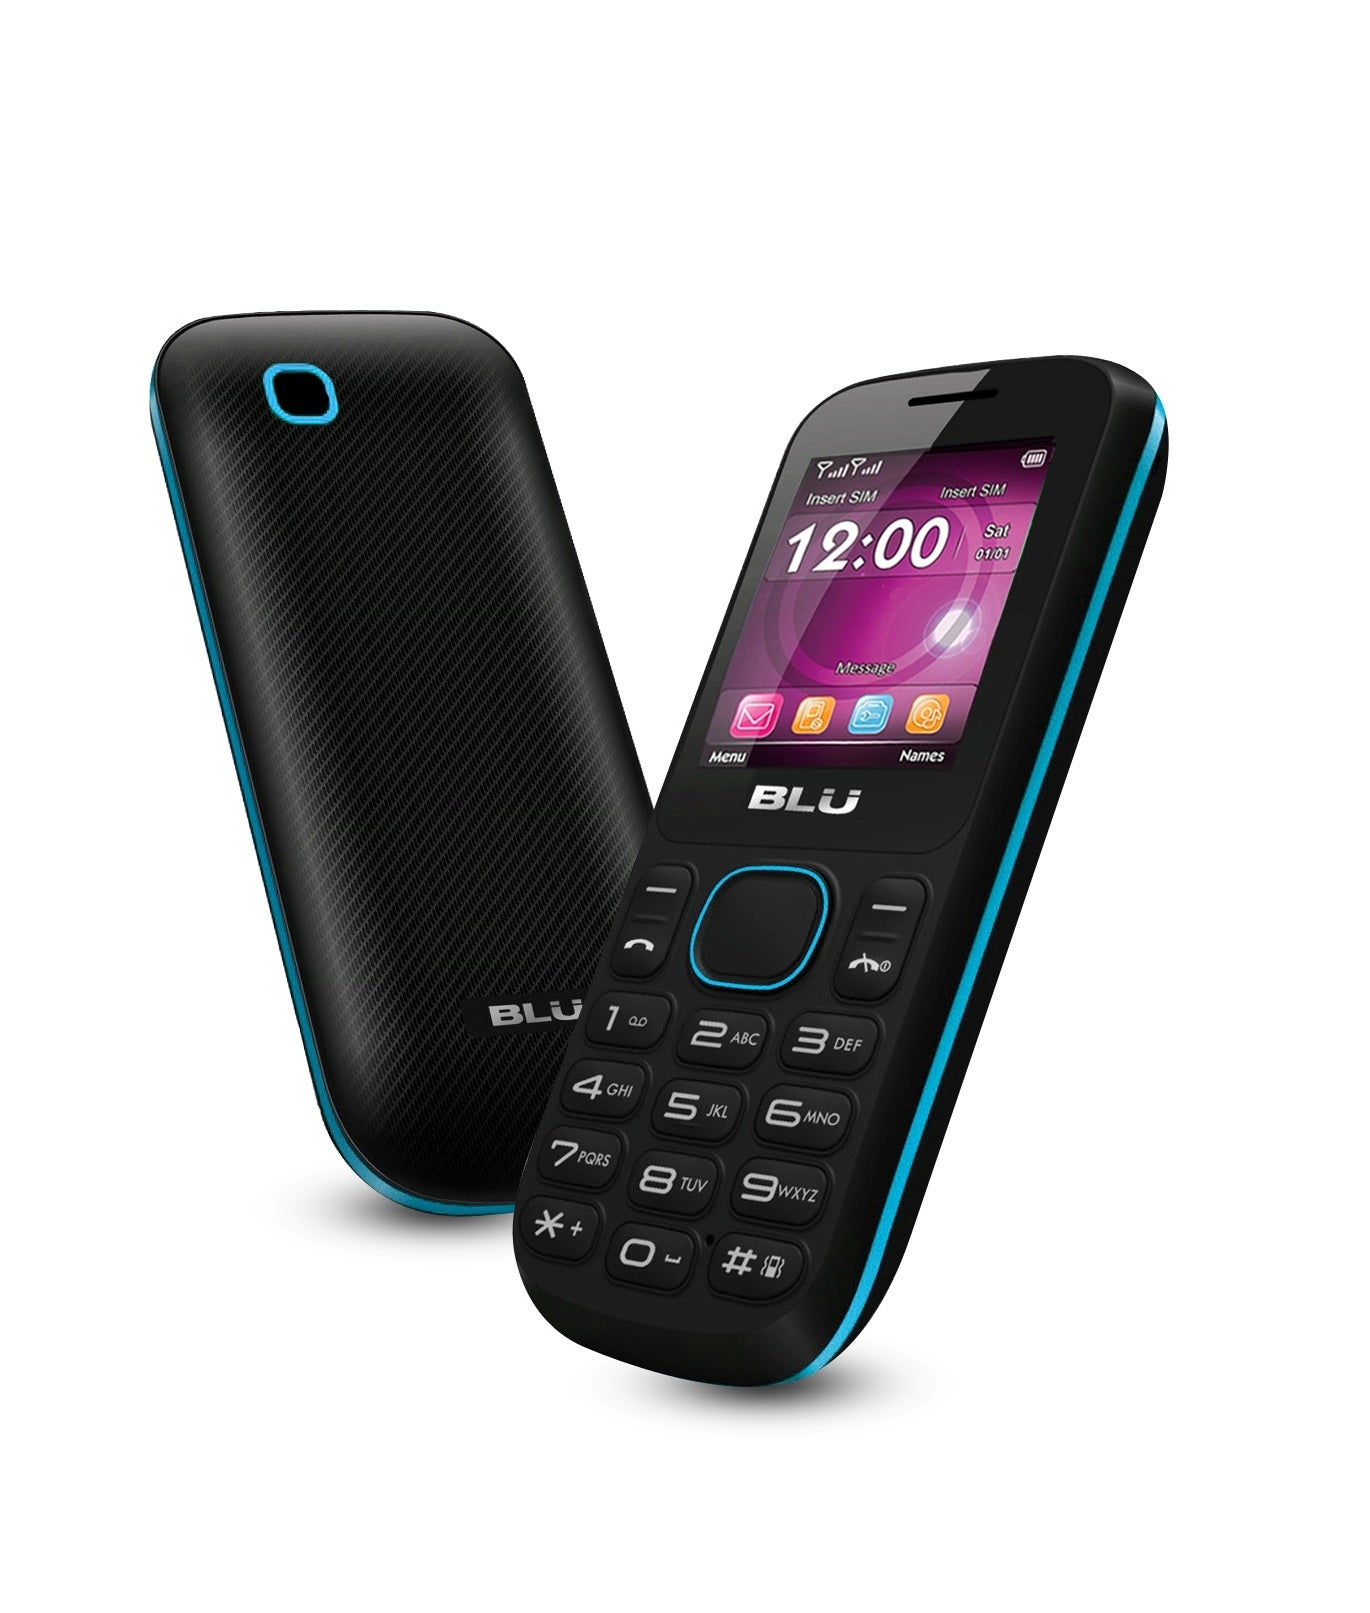 BLU Jenny T172 GSM Unlocked Dual SIM Cell Phone - Black/Blue